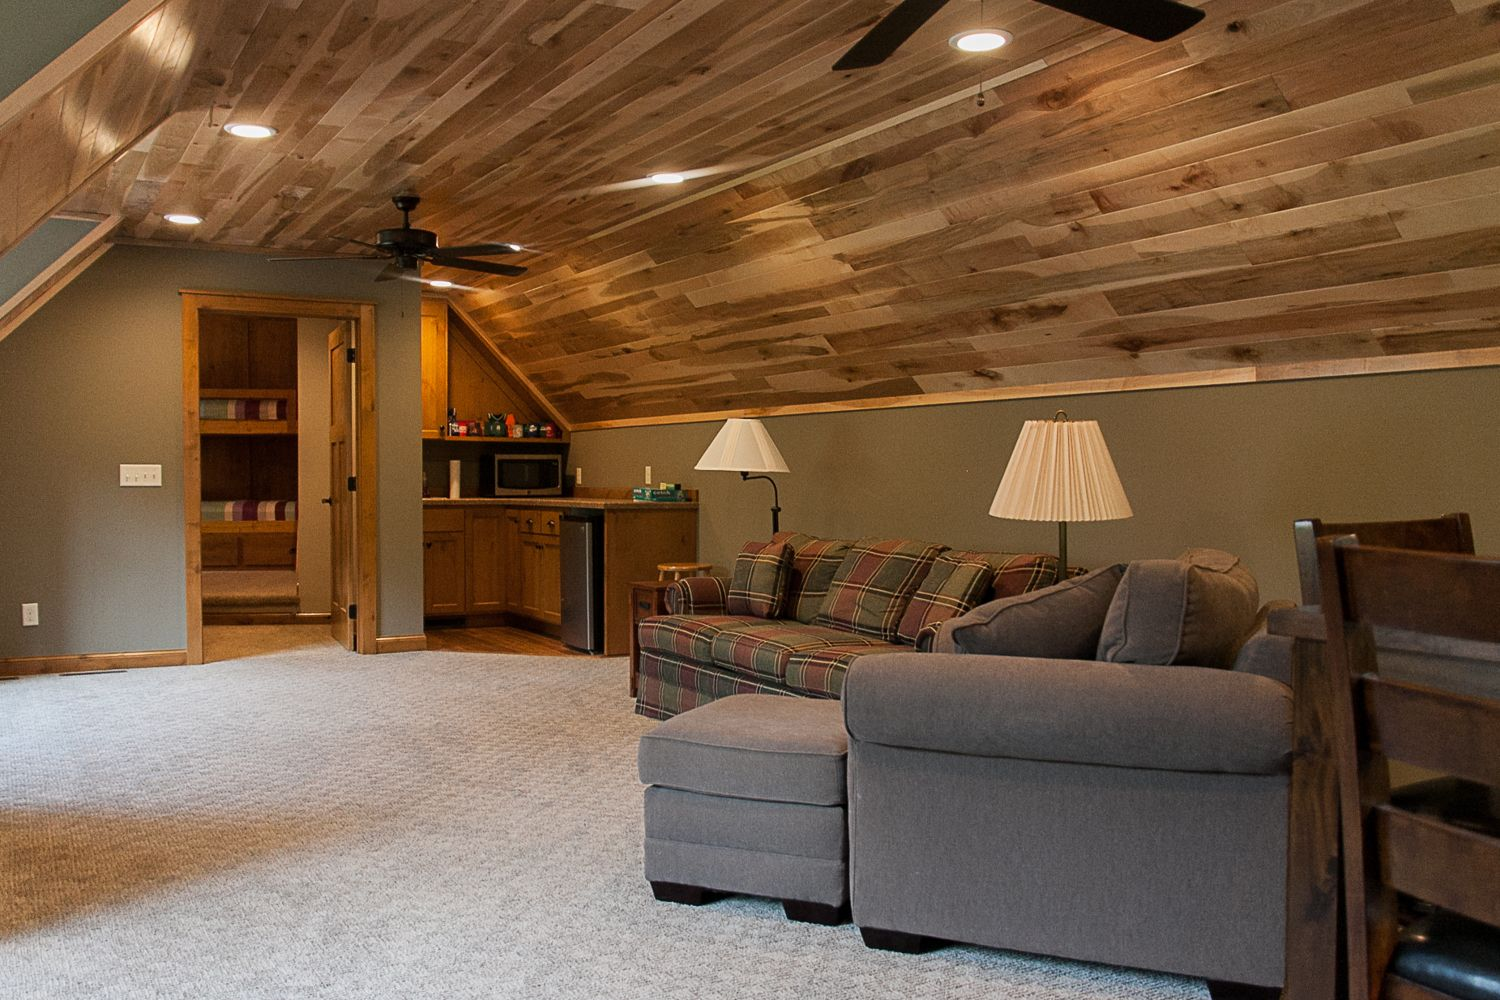 Hickory Ceiling Bonus Room Kid Above Garage In A Cabin Or Lake Home